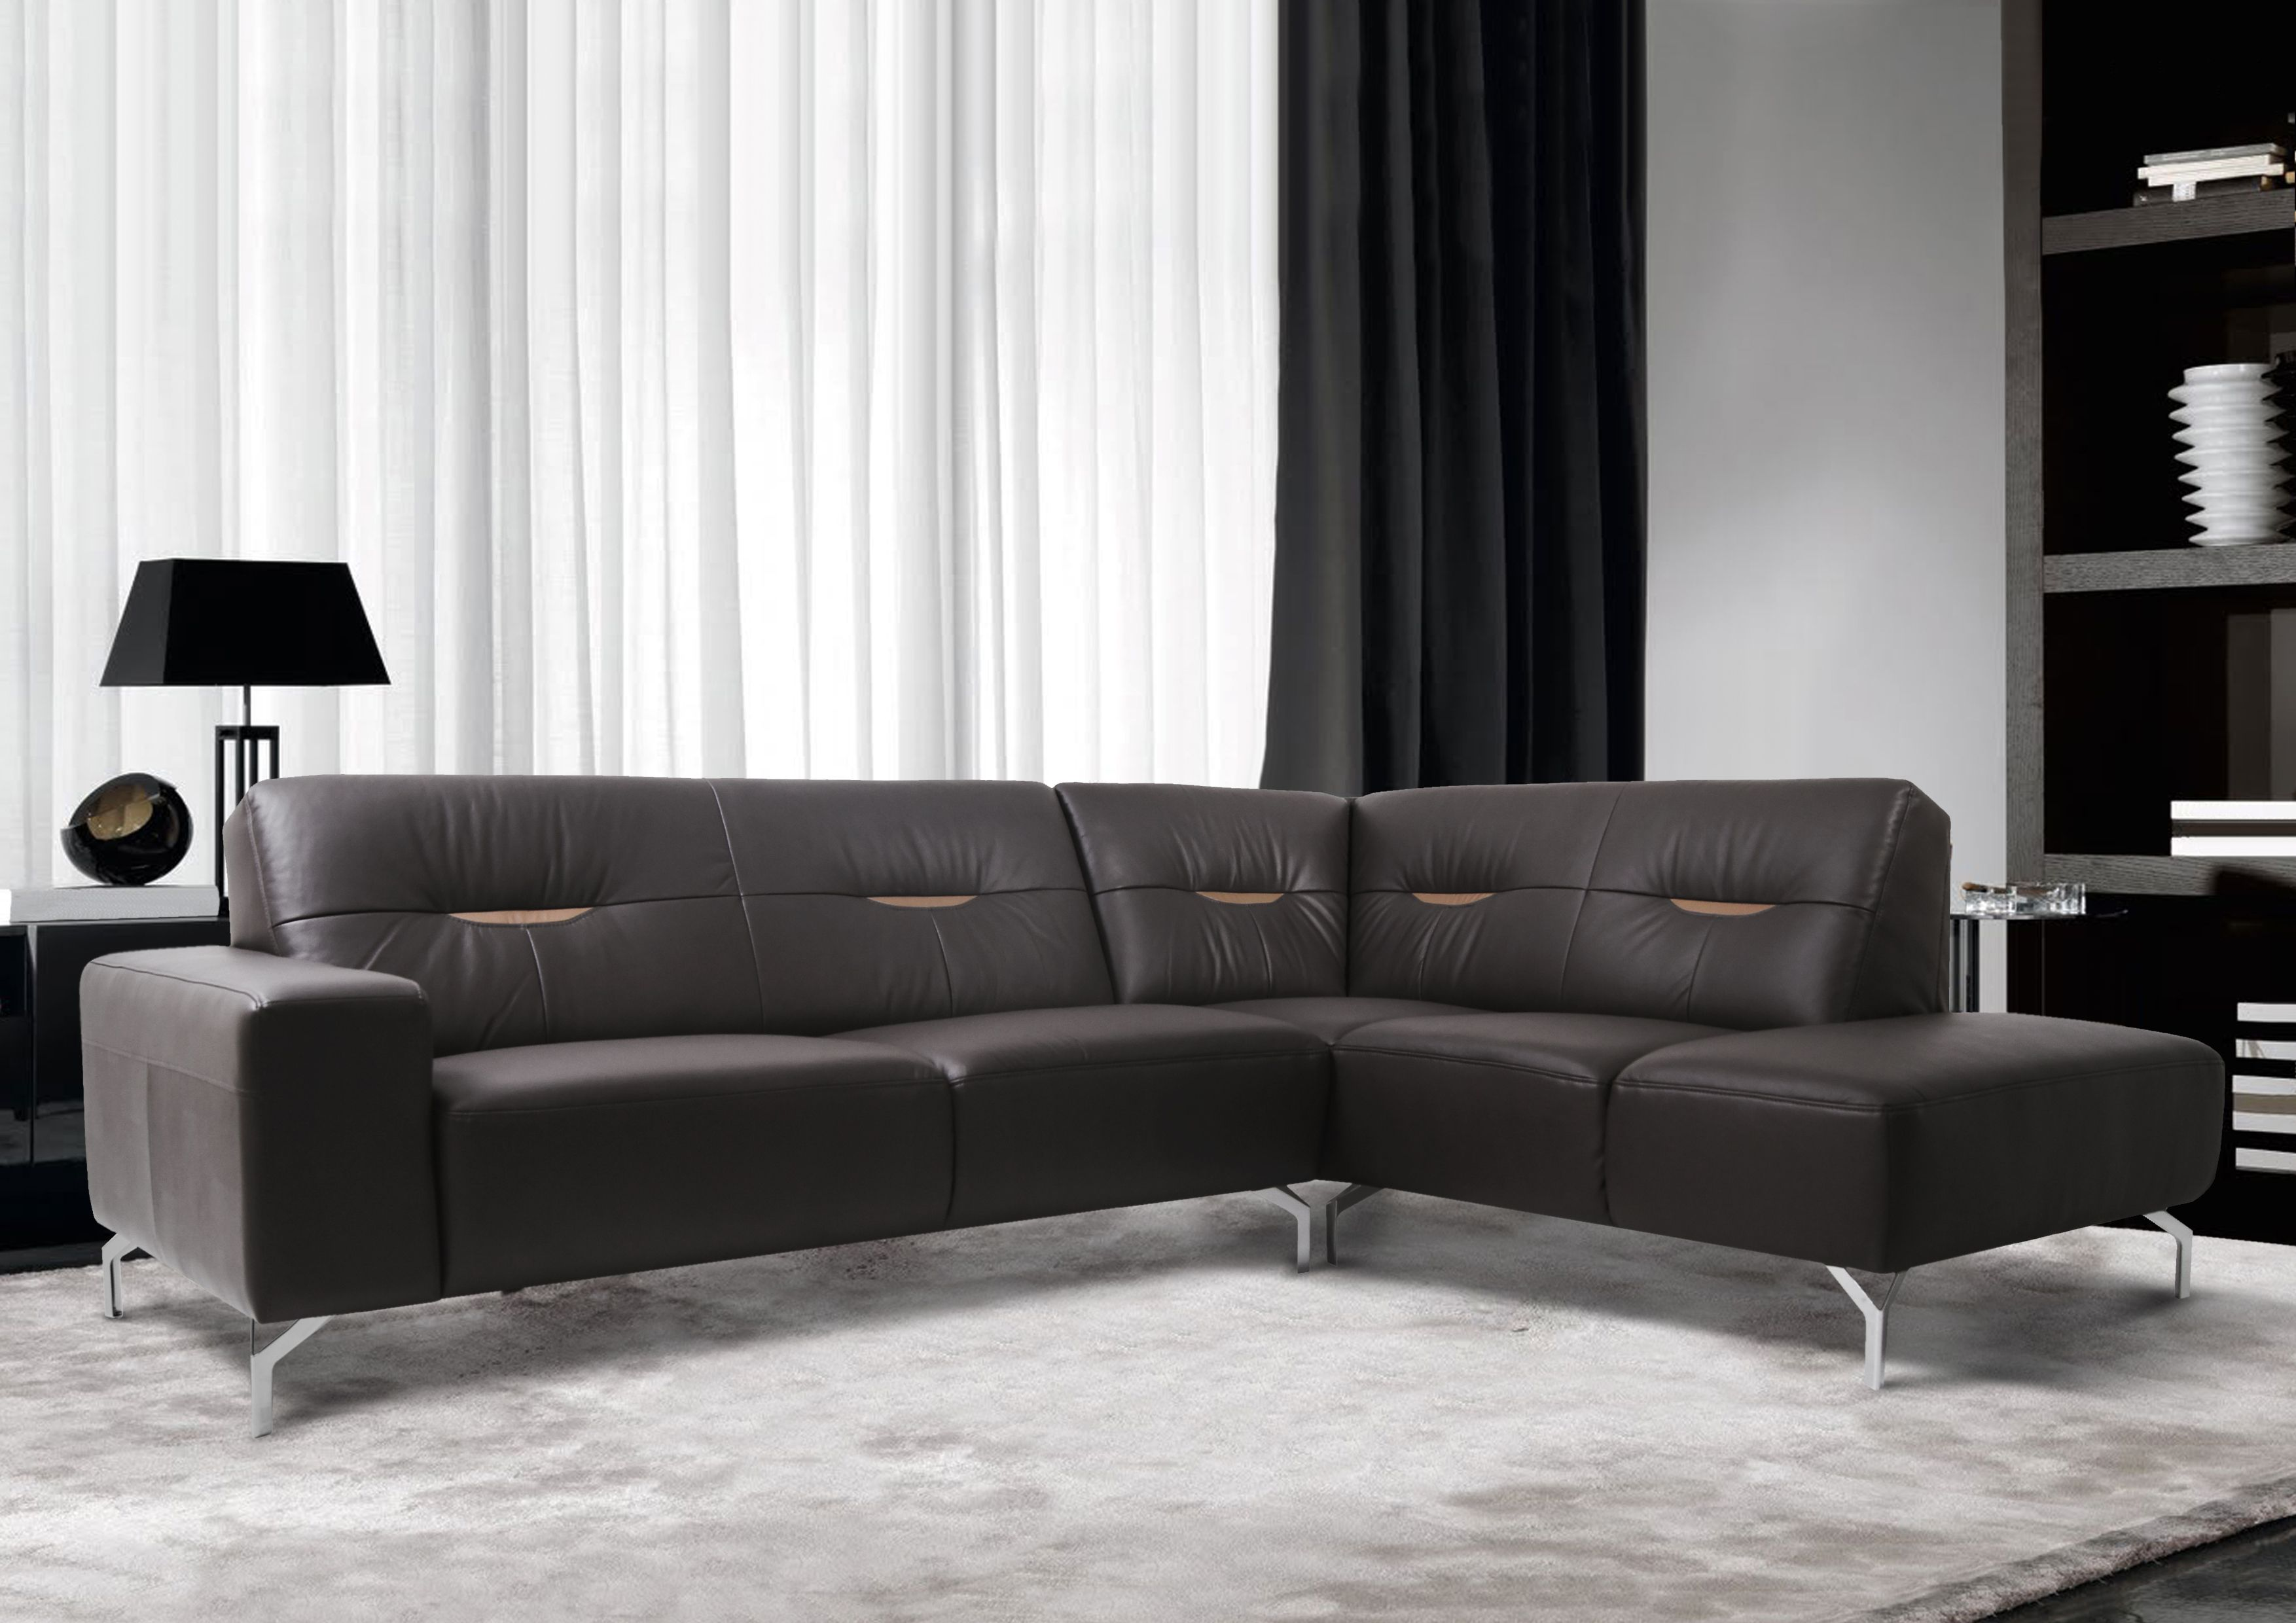 L Shape Sofa Set Designs+price Amalfi Leather Sofa An L Shaped Sofa Decked In Luxurious Leather